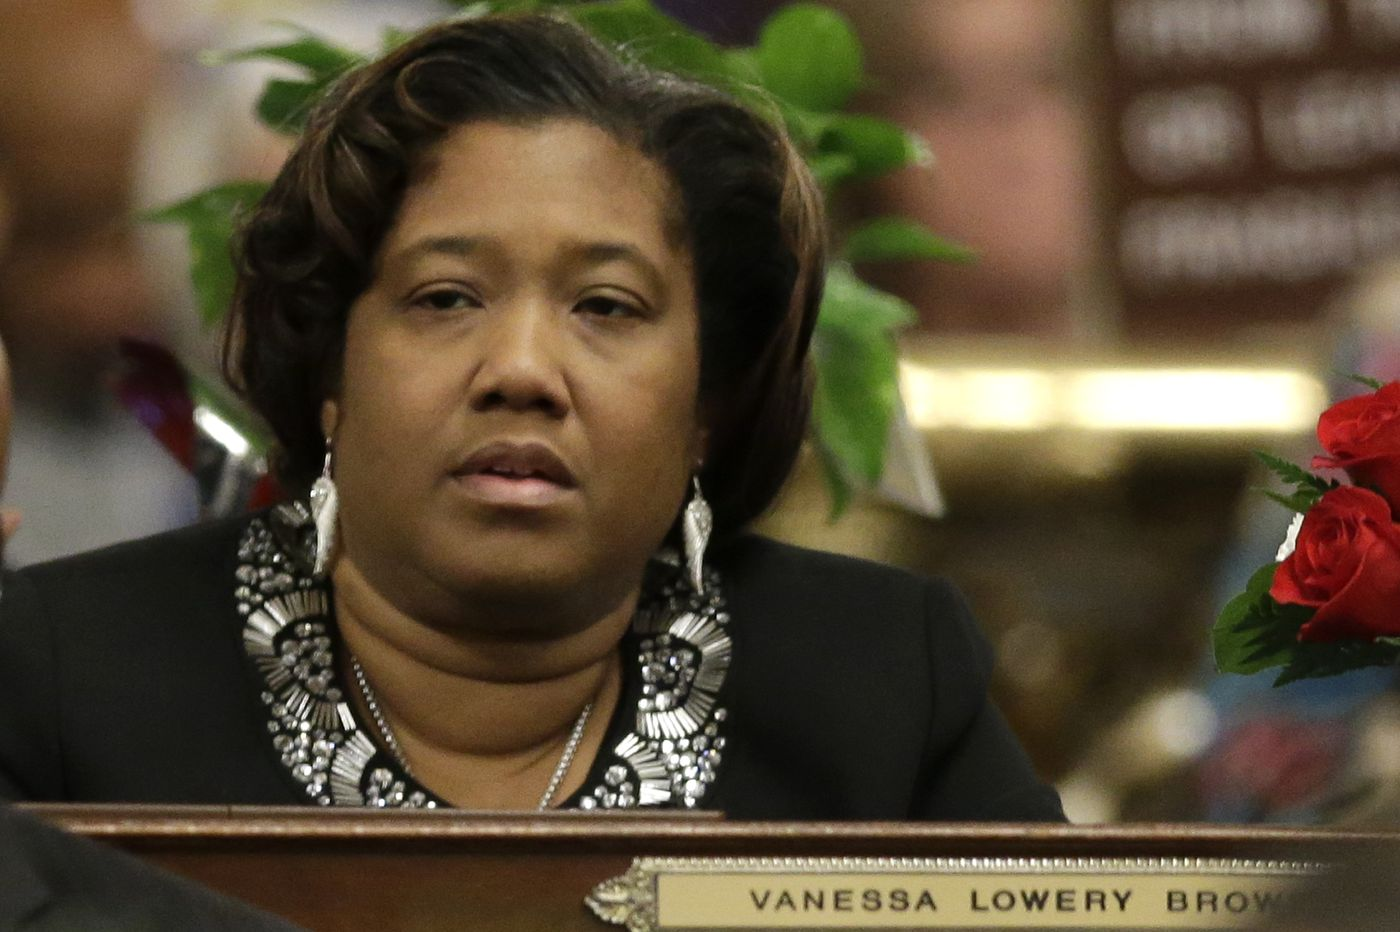 DA seeks court removal of Philly lawmaker convicted of bribery